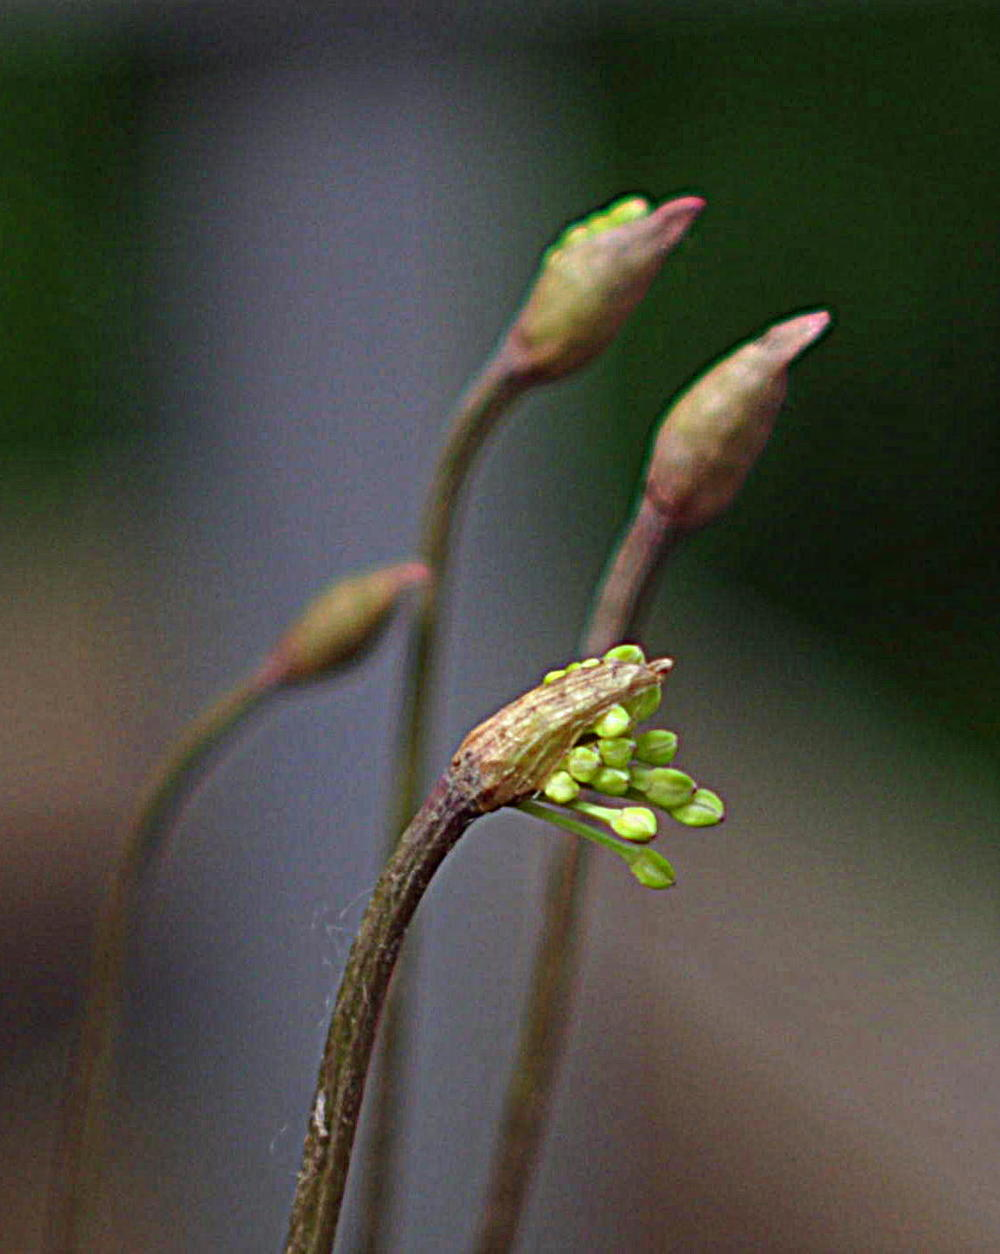 Ramp flower bud (click to enlarge)